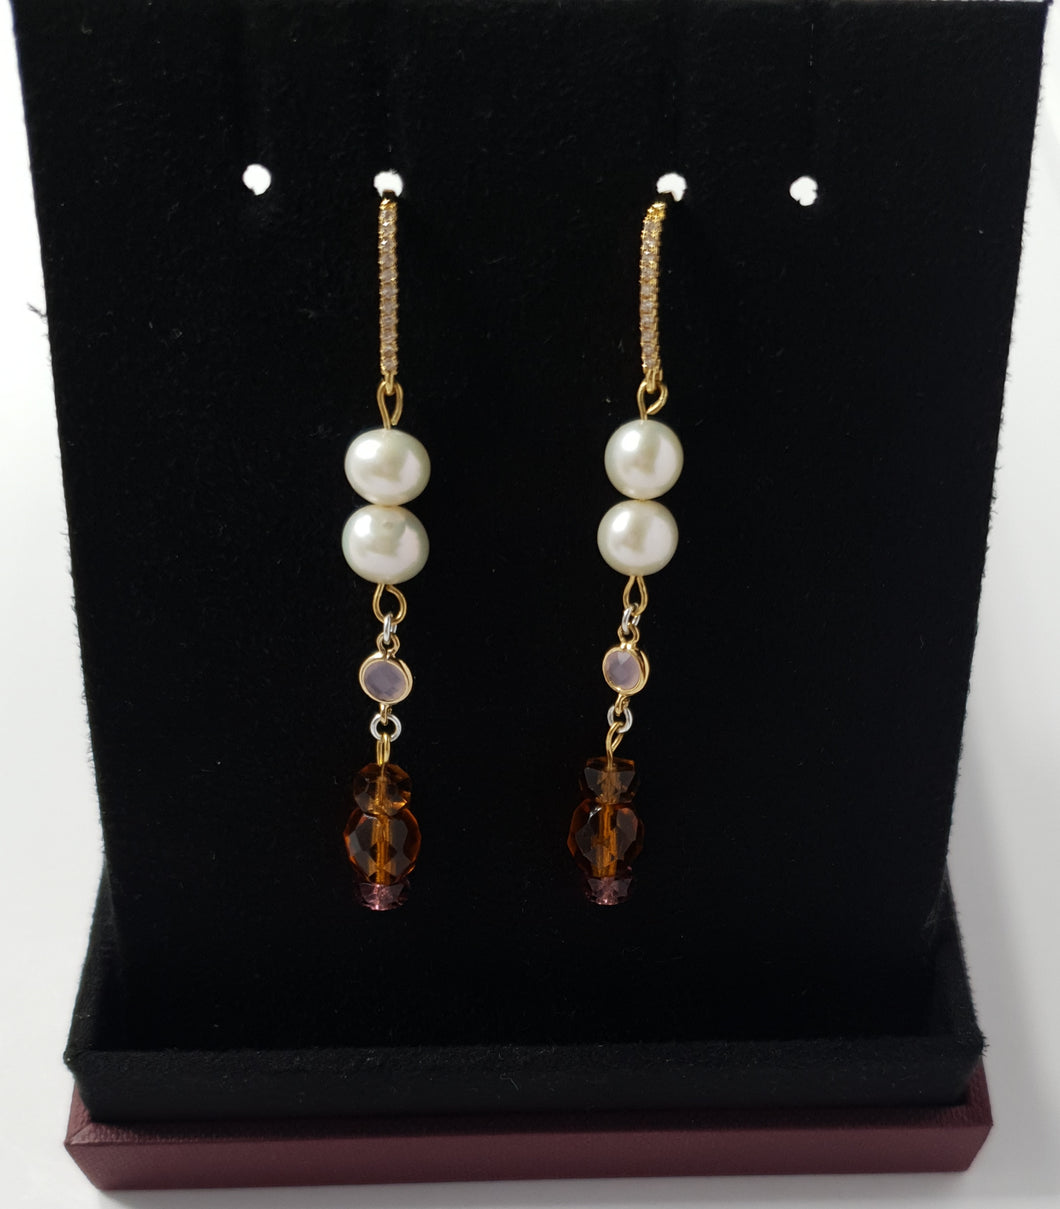 The 'Double Link' Amber Earrings